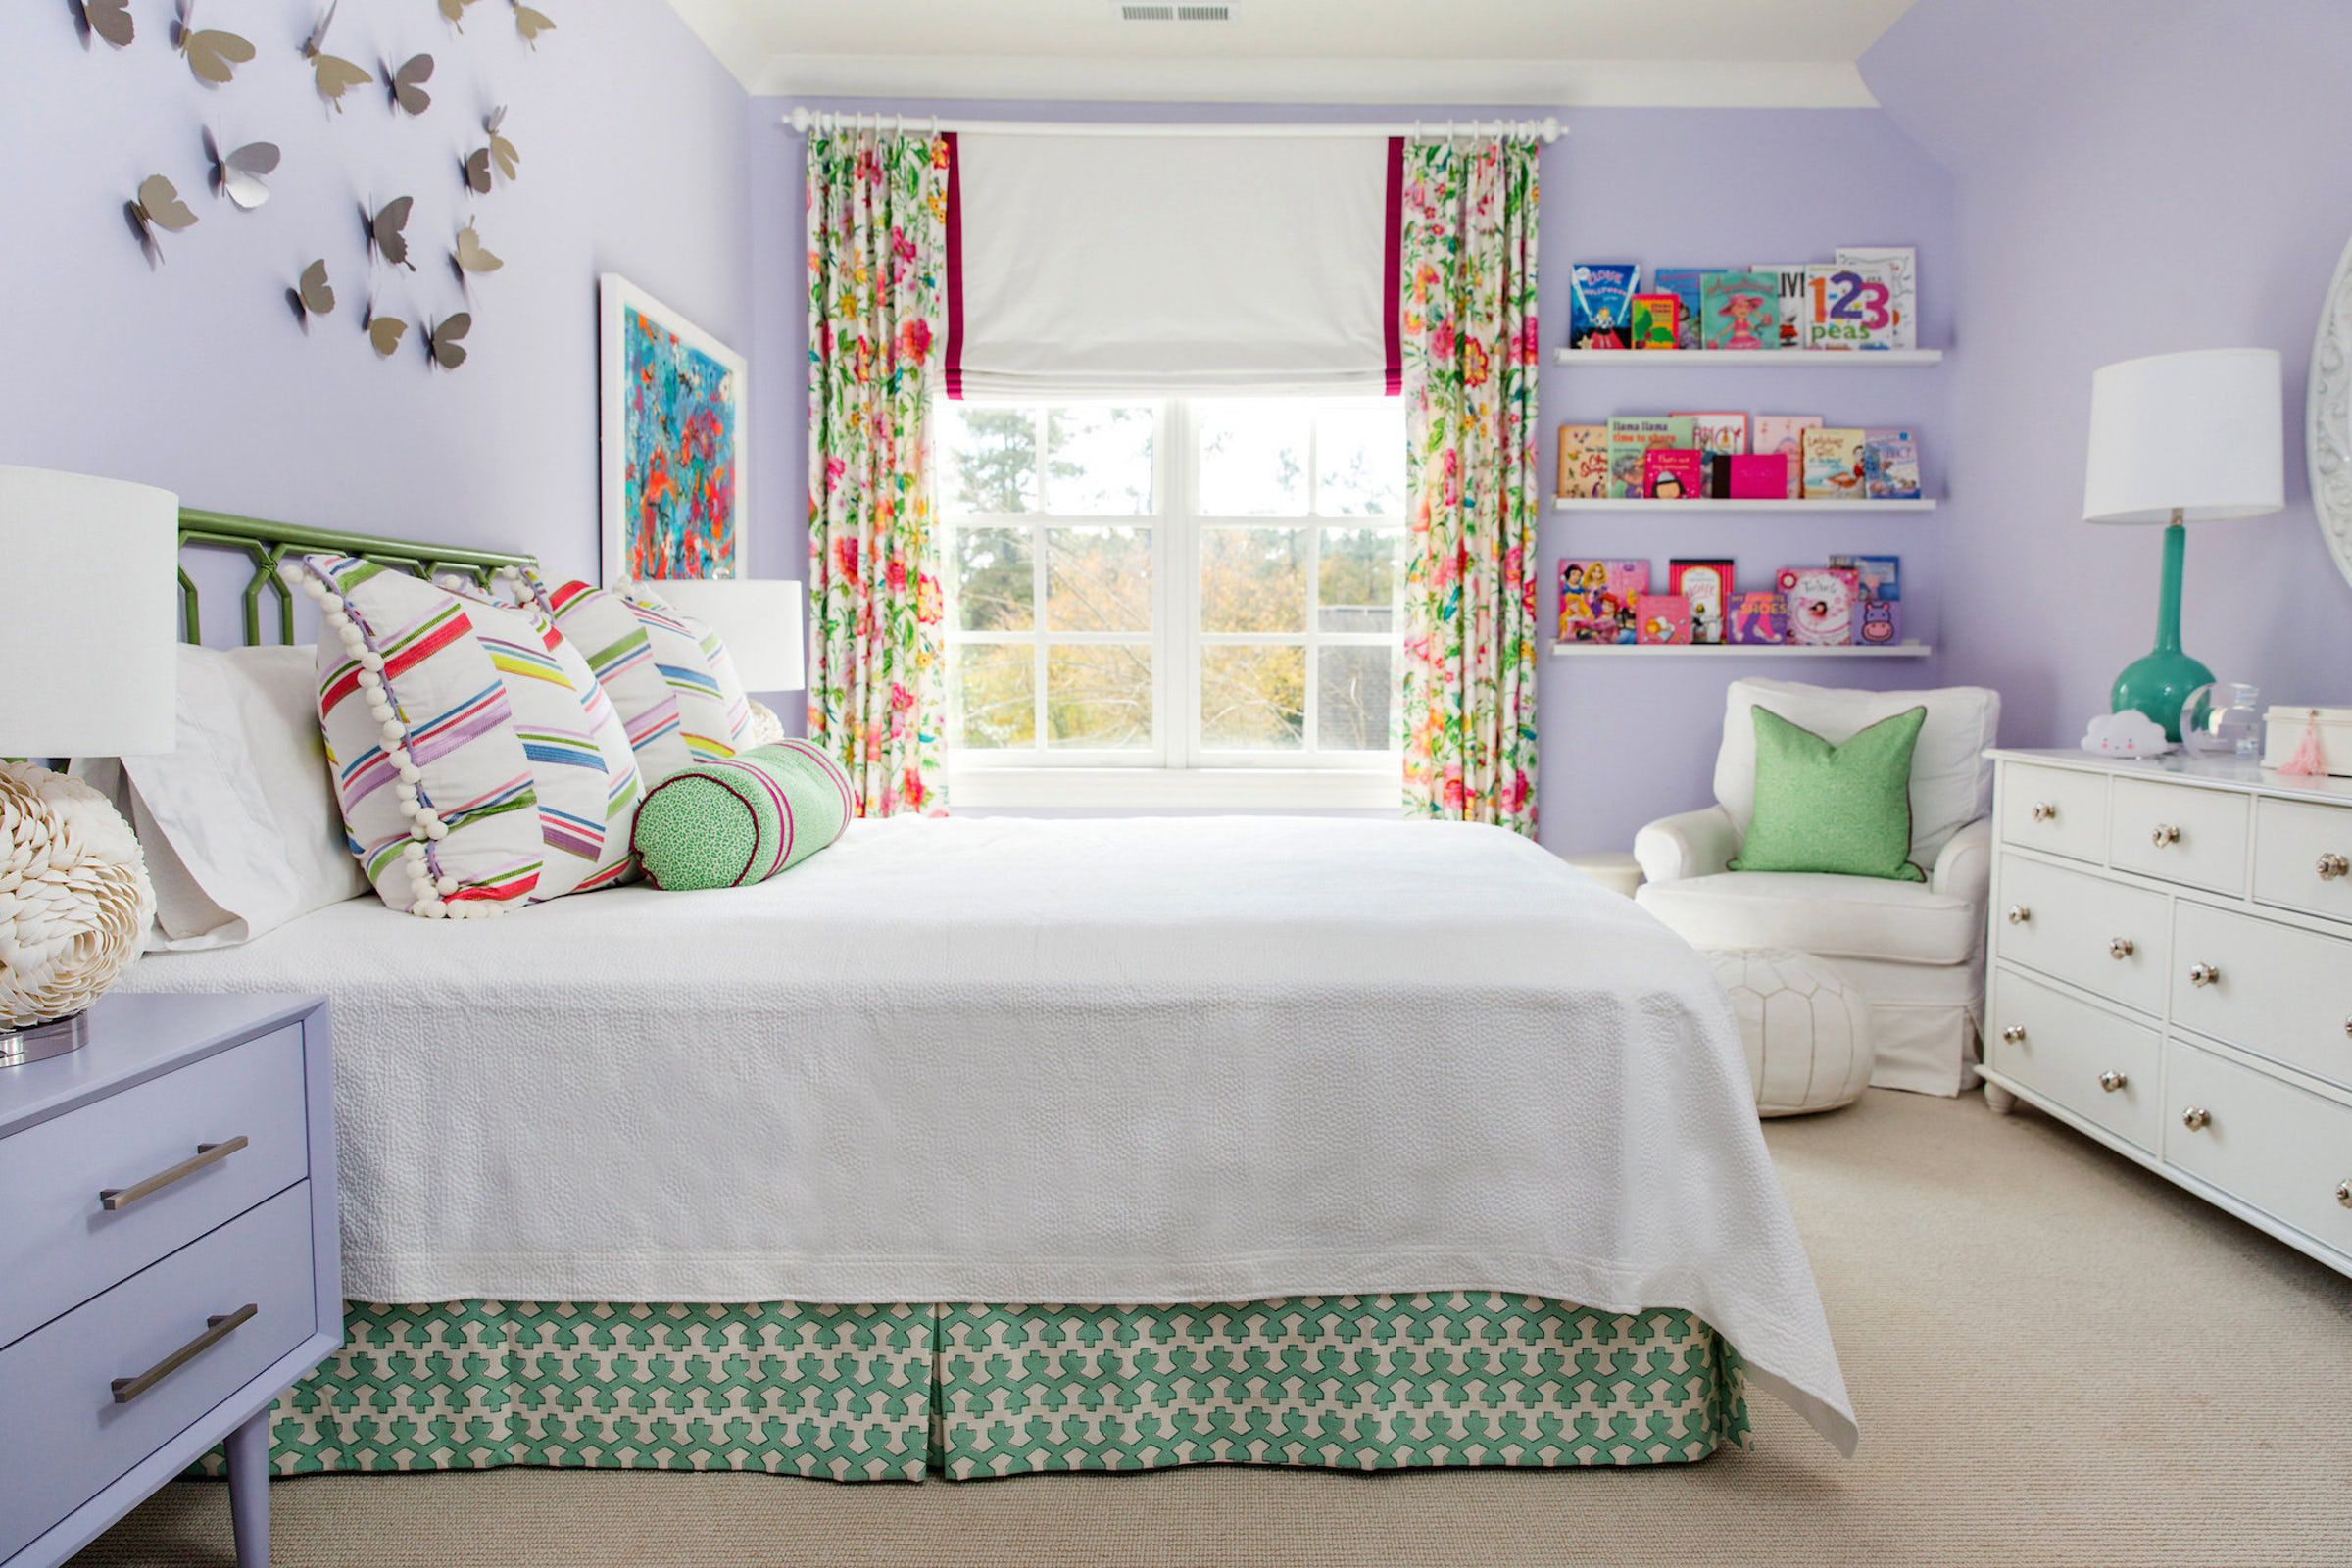 15 Creative Girls Room Ideas - How to Decorate a Girl's Bedroom